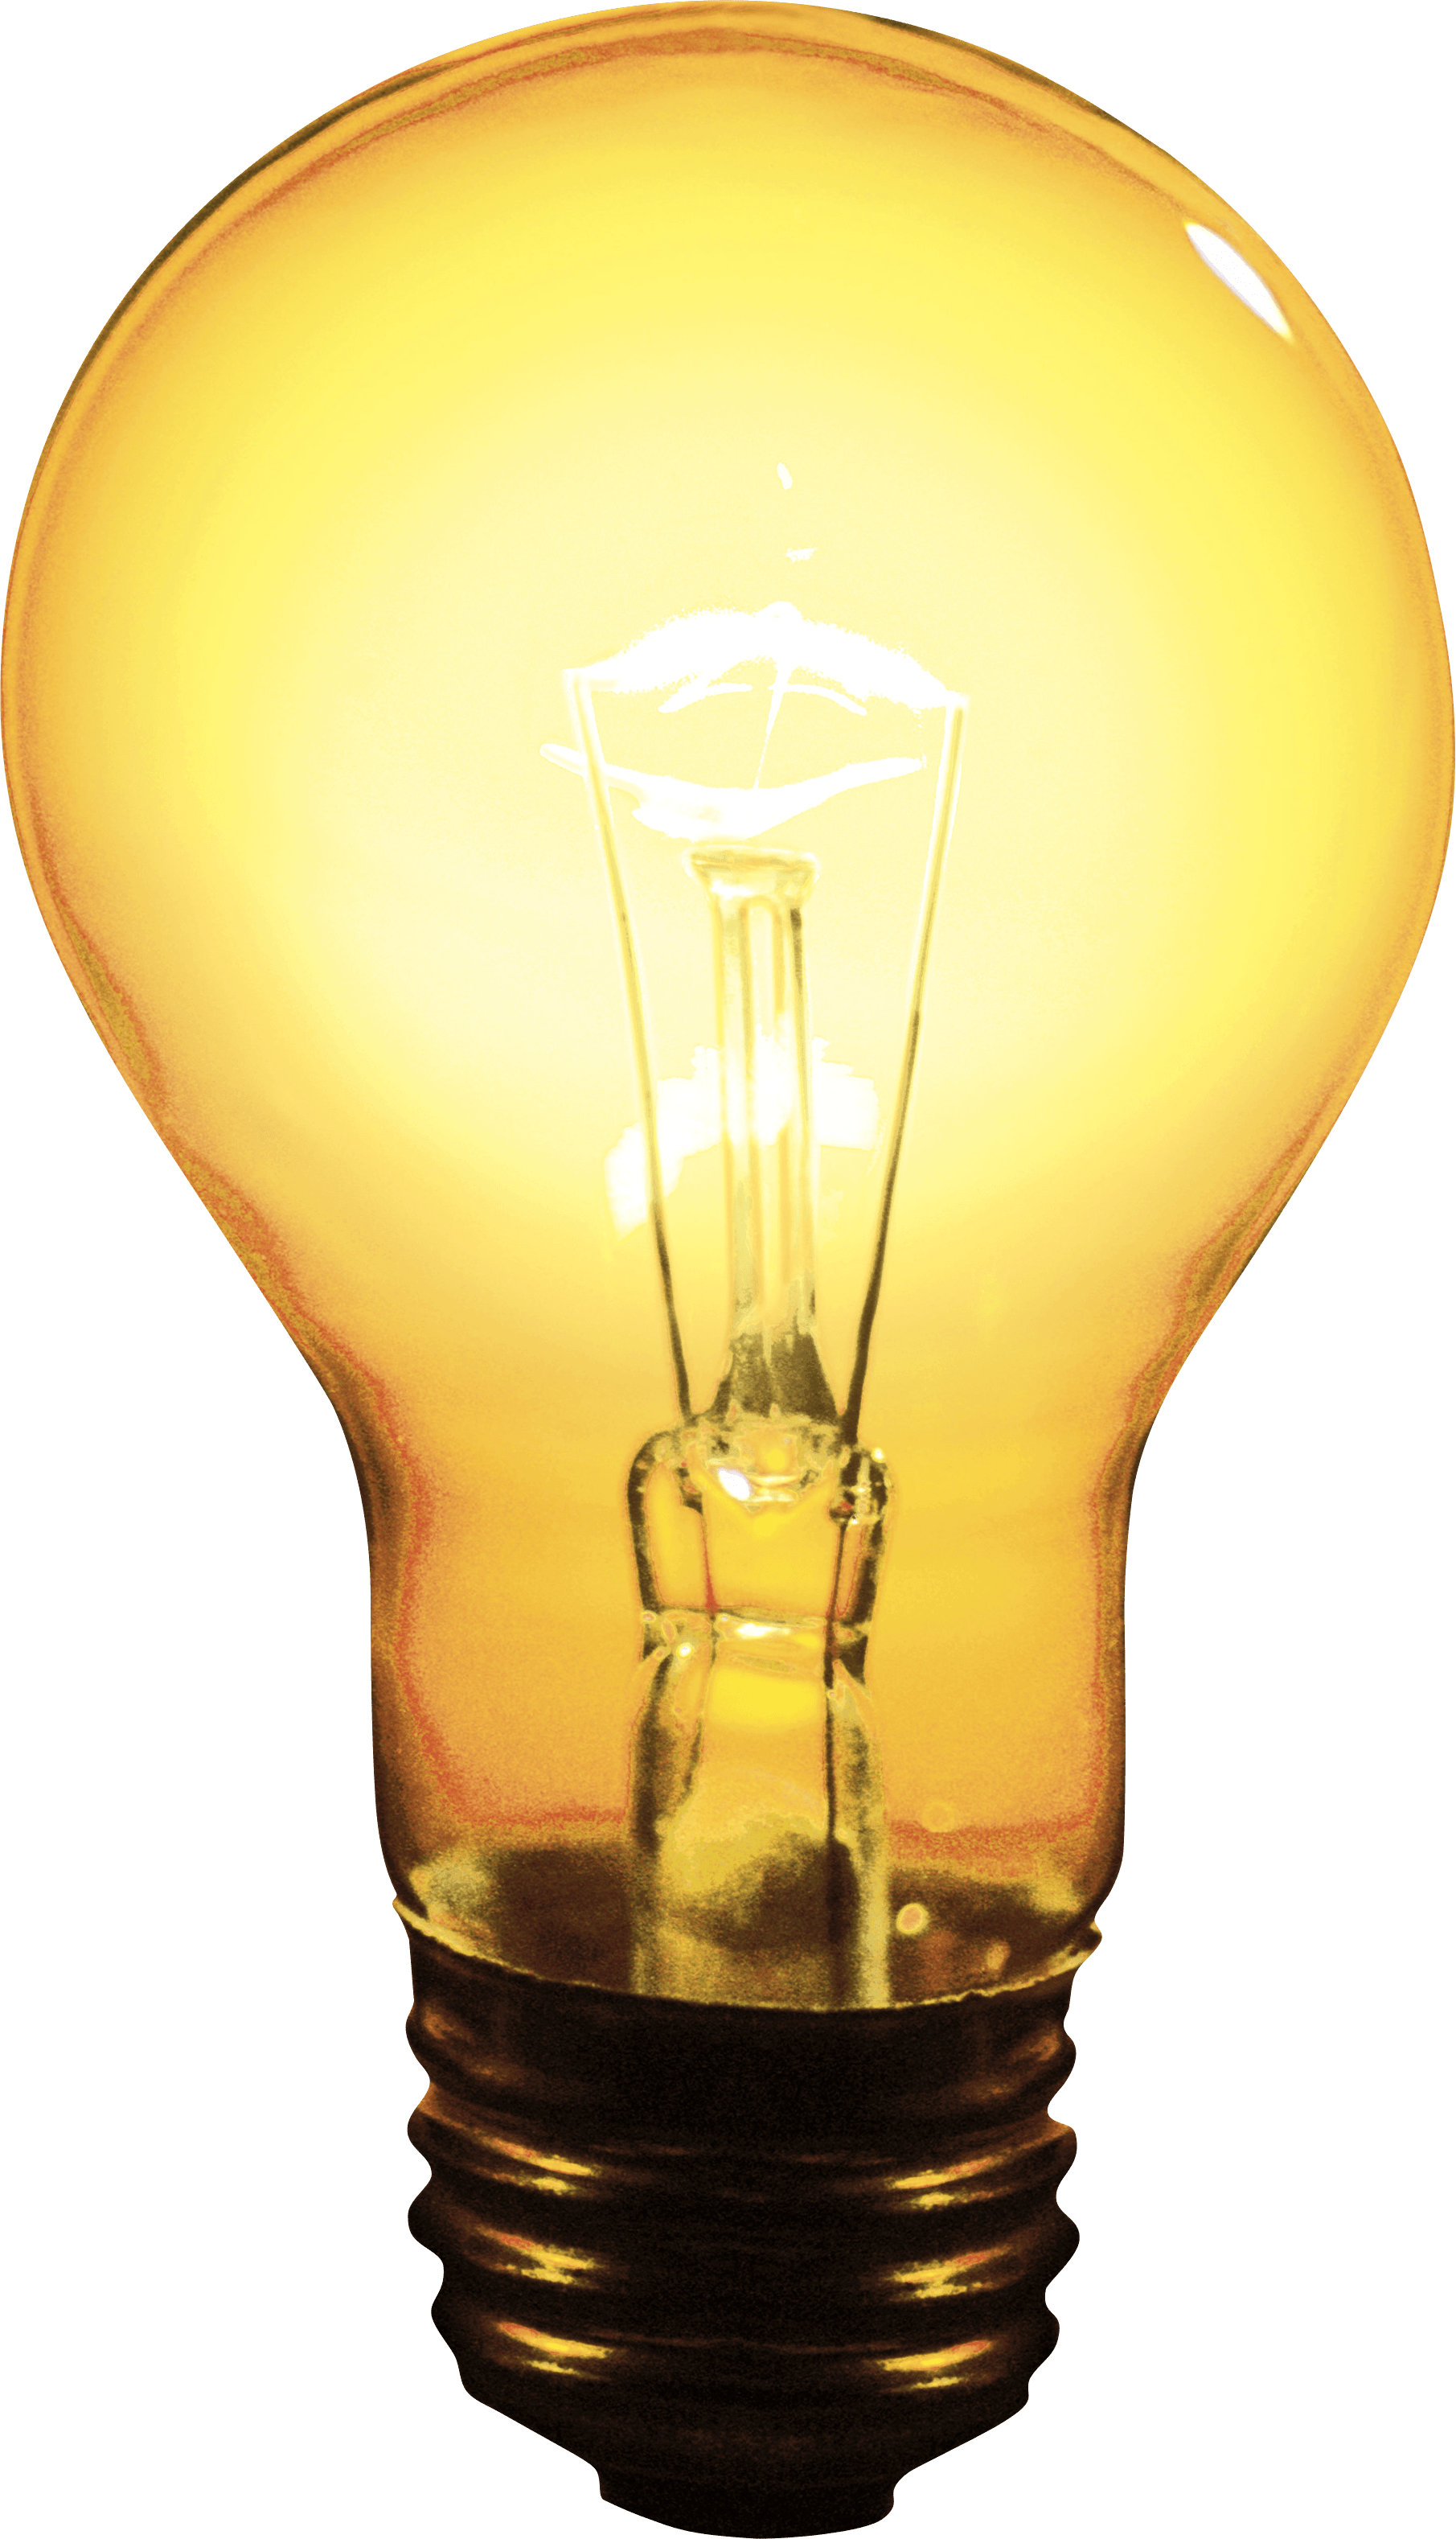 Download Electric Lamp Png Image HQ PNG Image | FreePNGImg for Electric Lamp Png  570bof